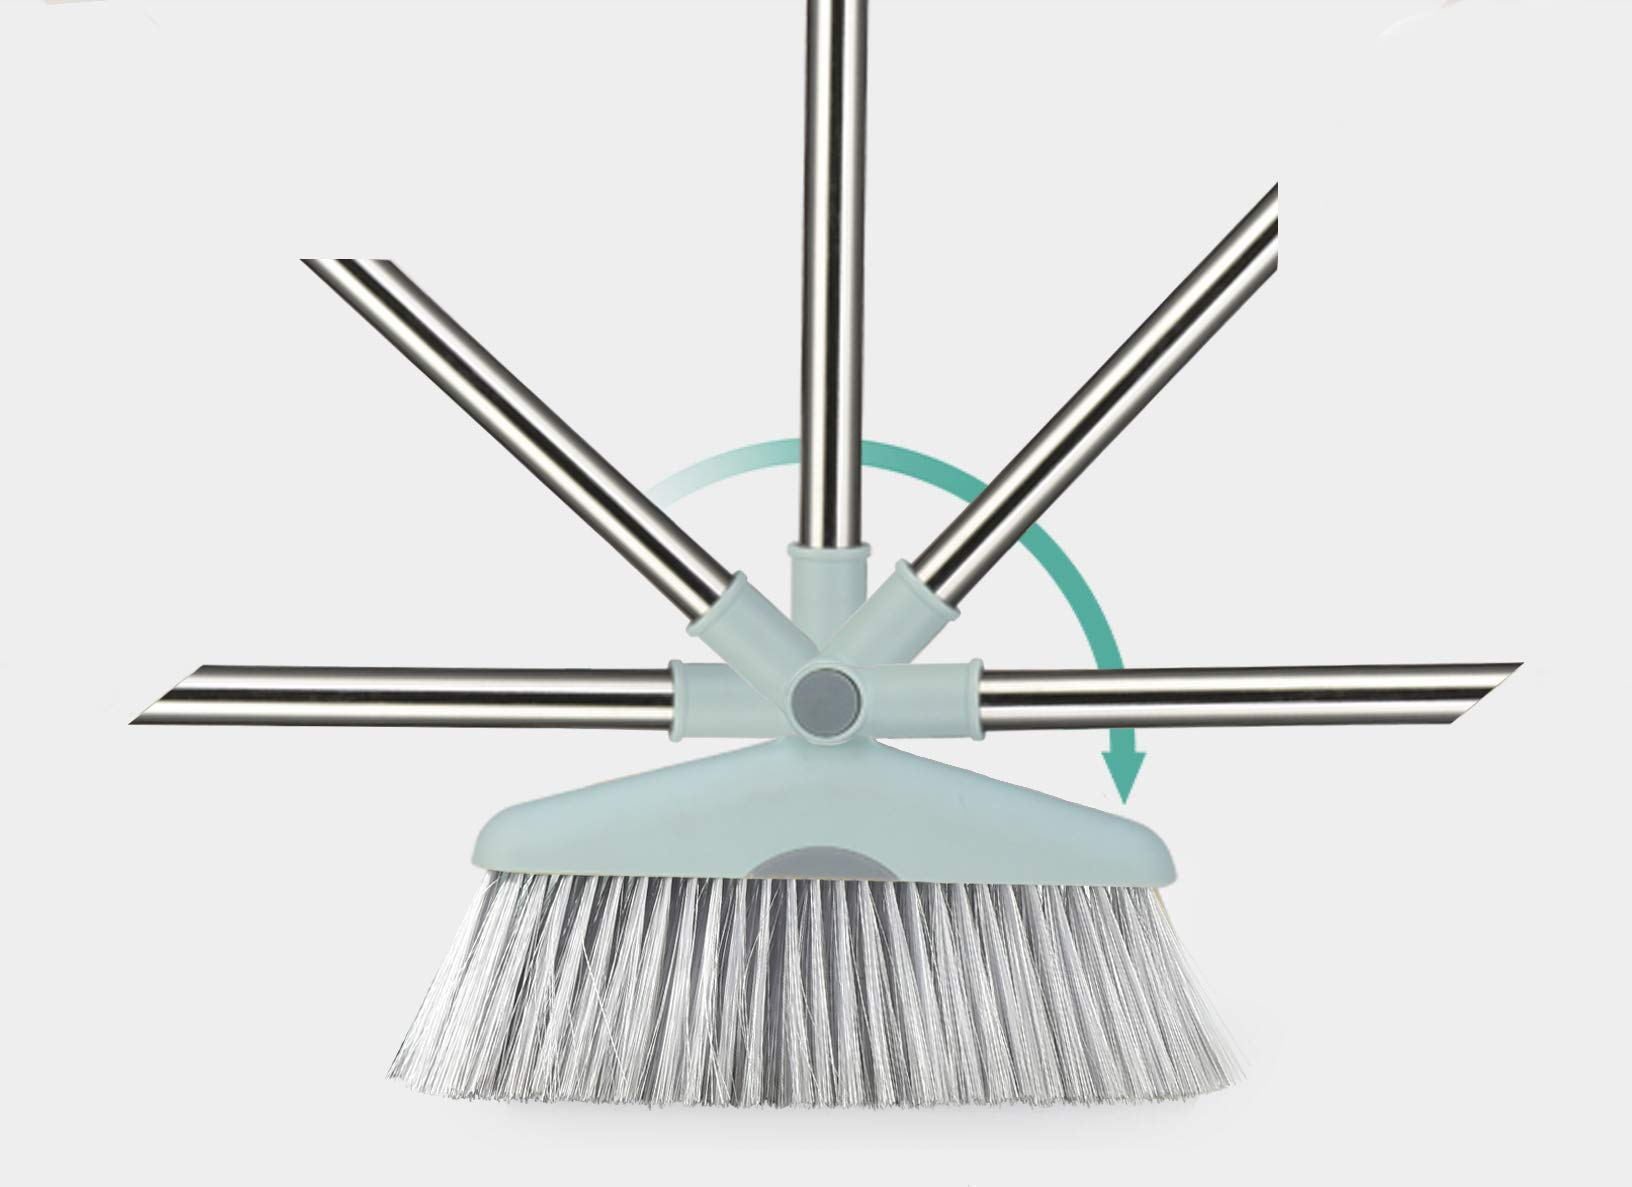 Dust Pan Sweep Set and Broom/Dustpan Cleans Broom Combo with Long Handle Broom Organizer for Home Kitchen Room Office Lobby Floor Use Upright Stand up Dustpan Broom Set by YOUSHANGJIA (Image #3)